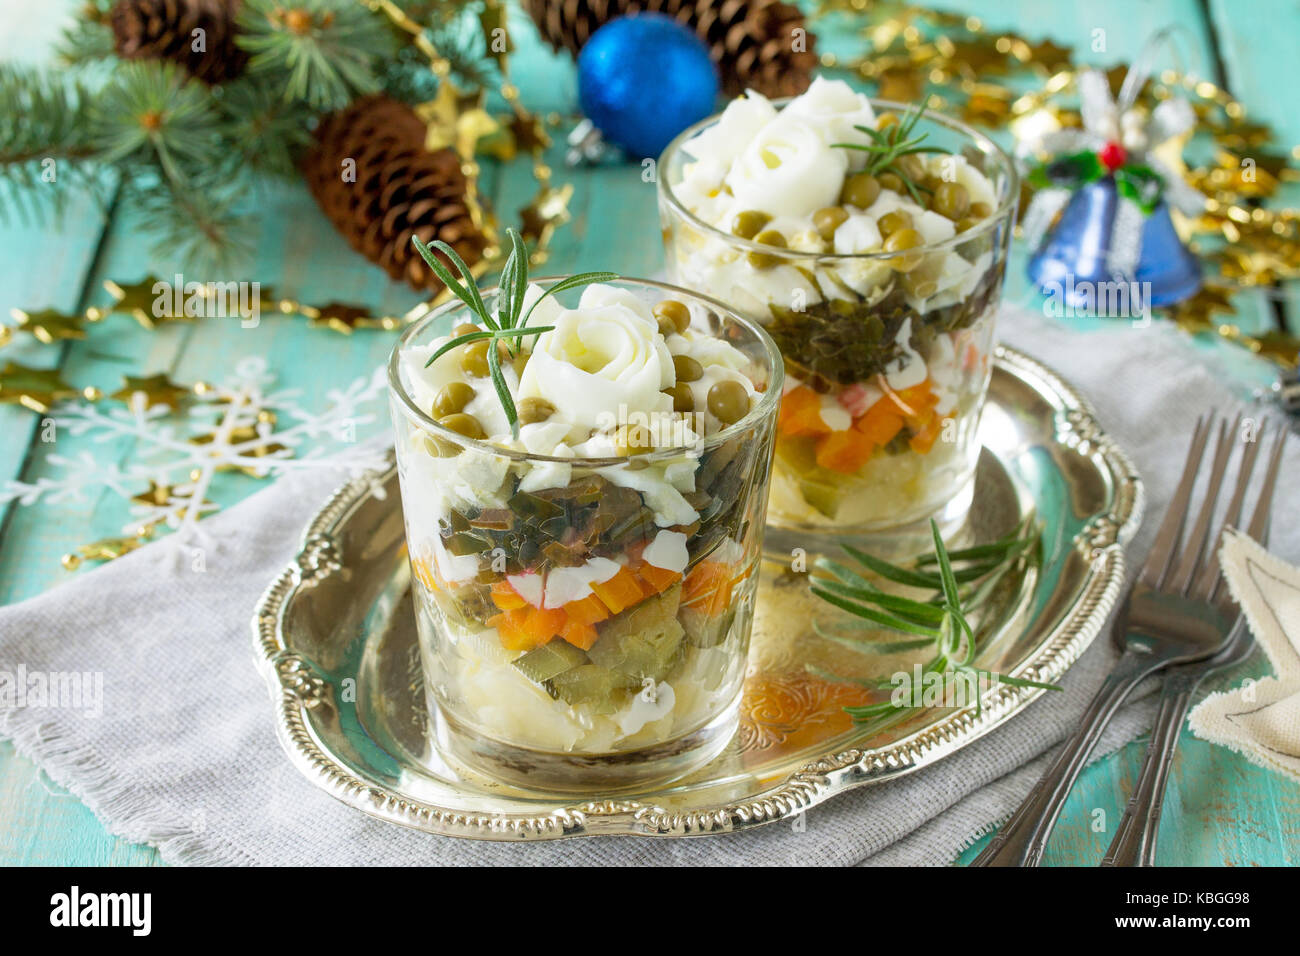 Homemade holiday snack Christmas table. Salad with marinated cucumber, potatoes, crab sticks, green peas and egg. - Stock Image